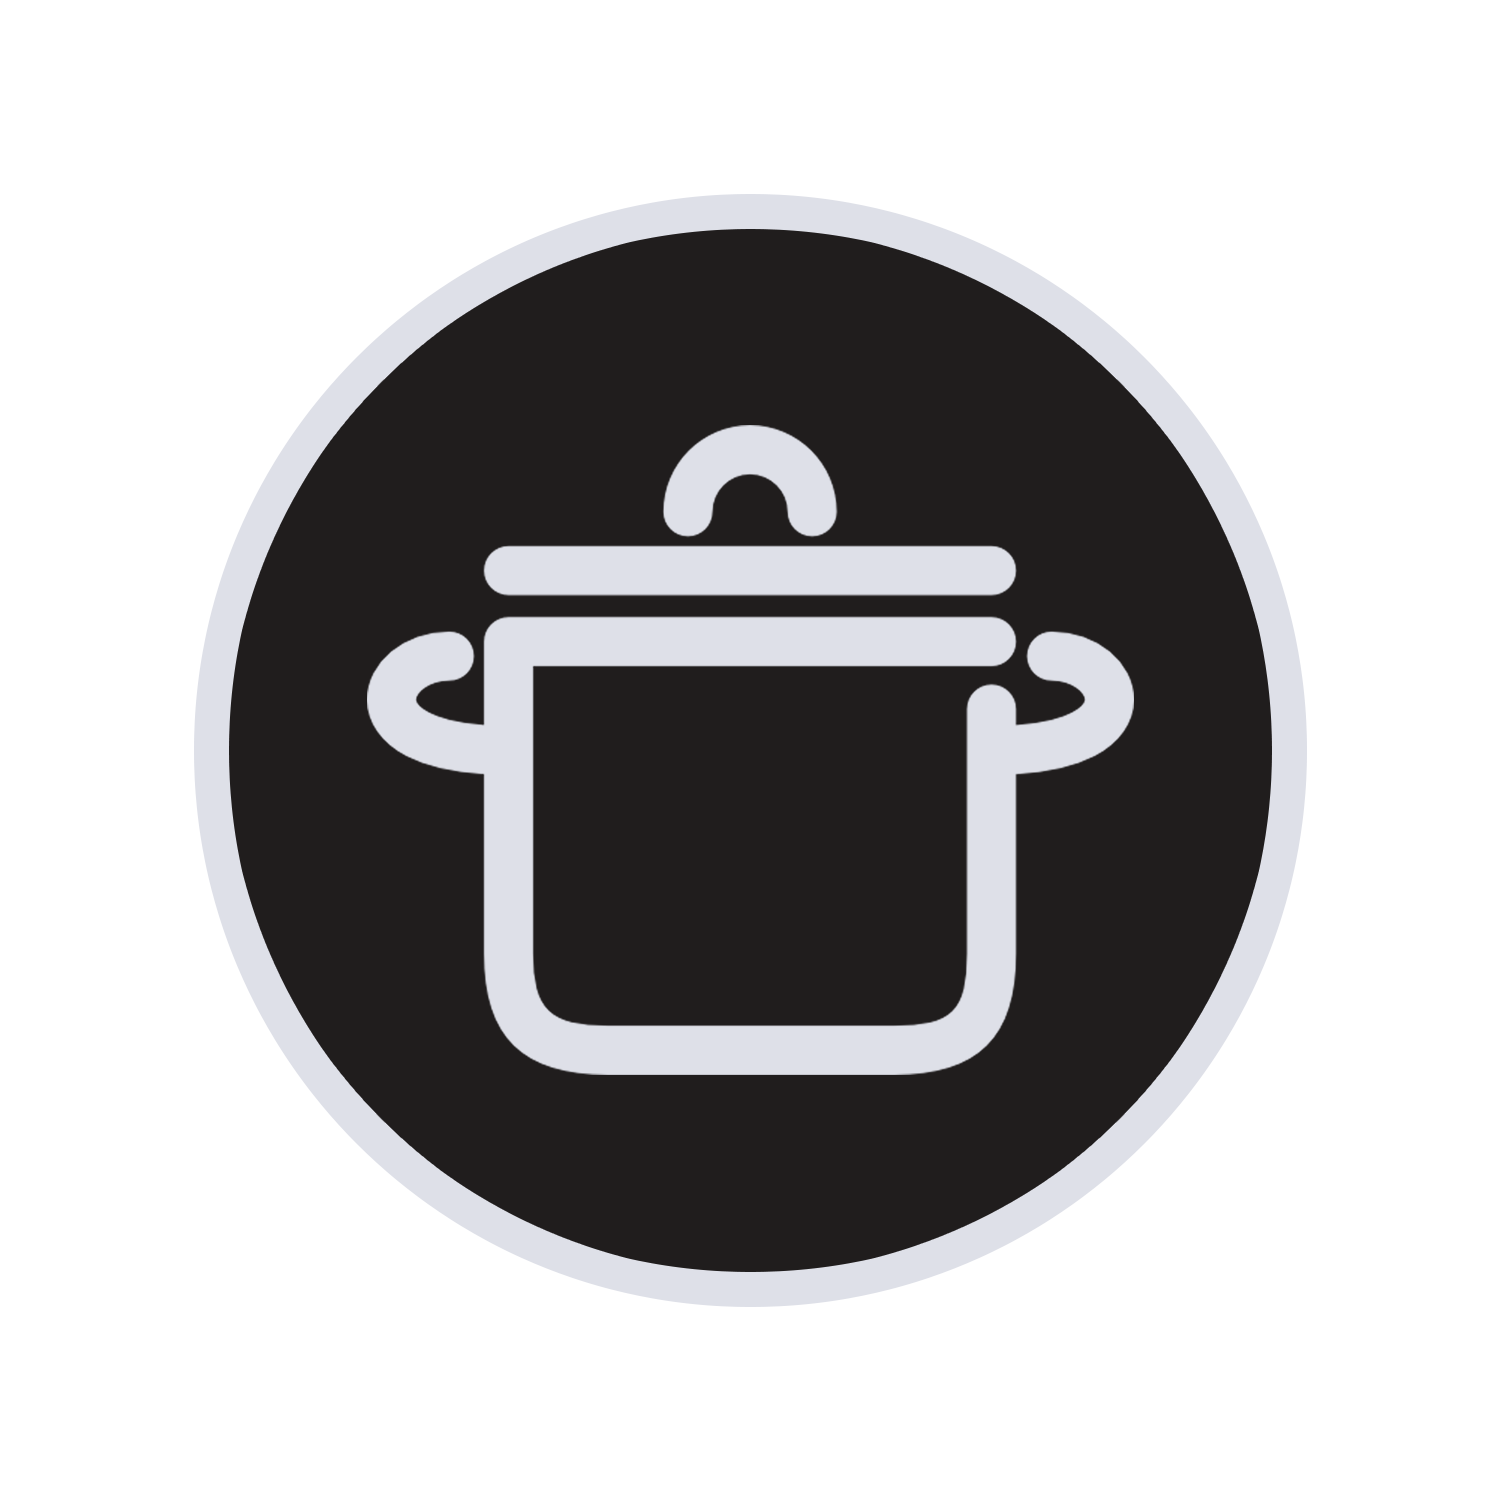 COOK_ICON_webstroke.png